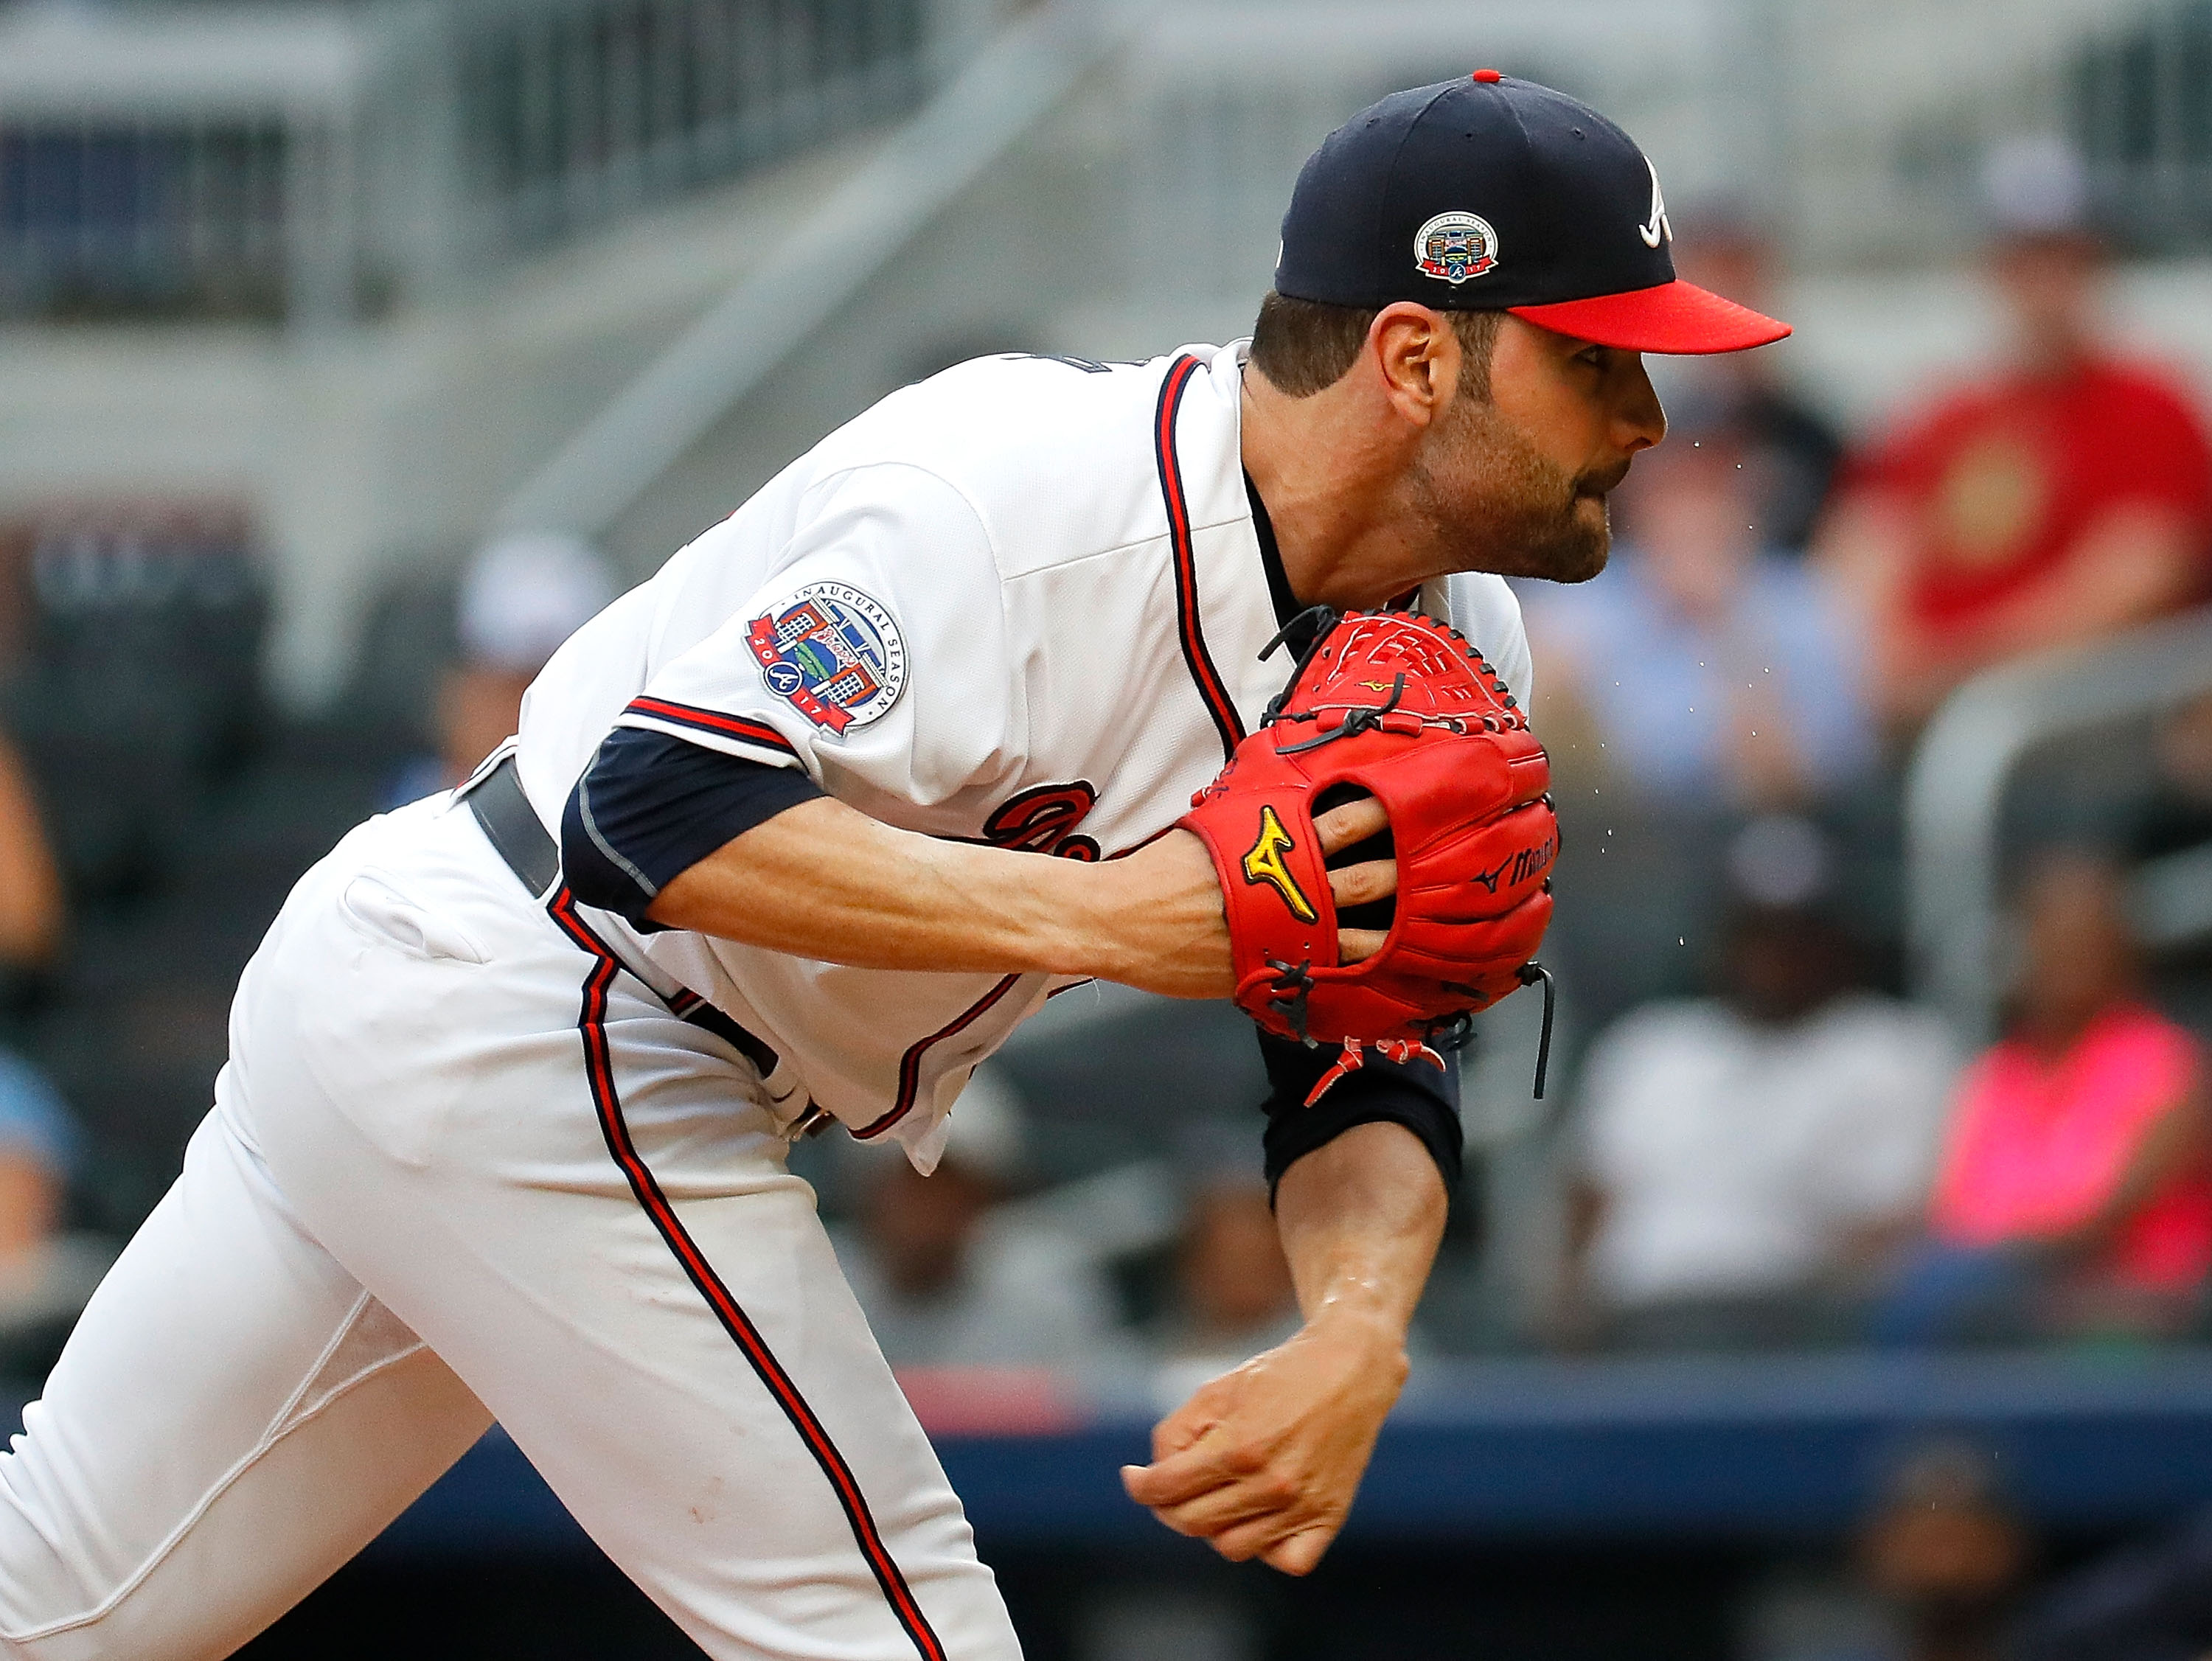 Minnesota Twins close to trade for LHP Jaime Garcia